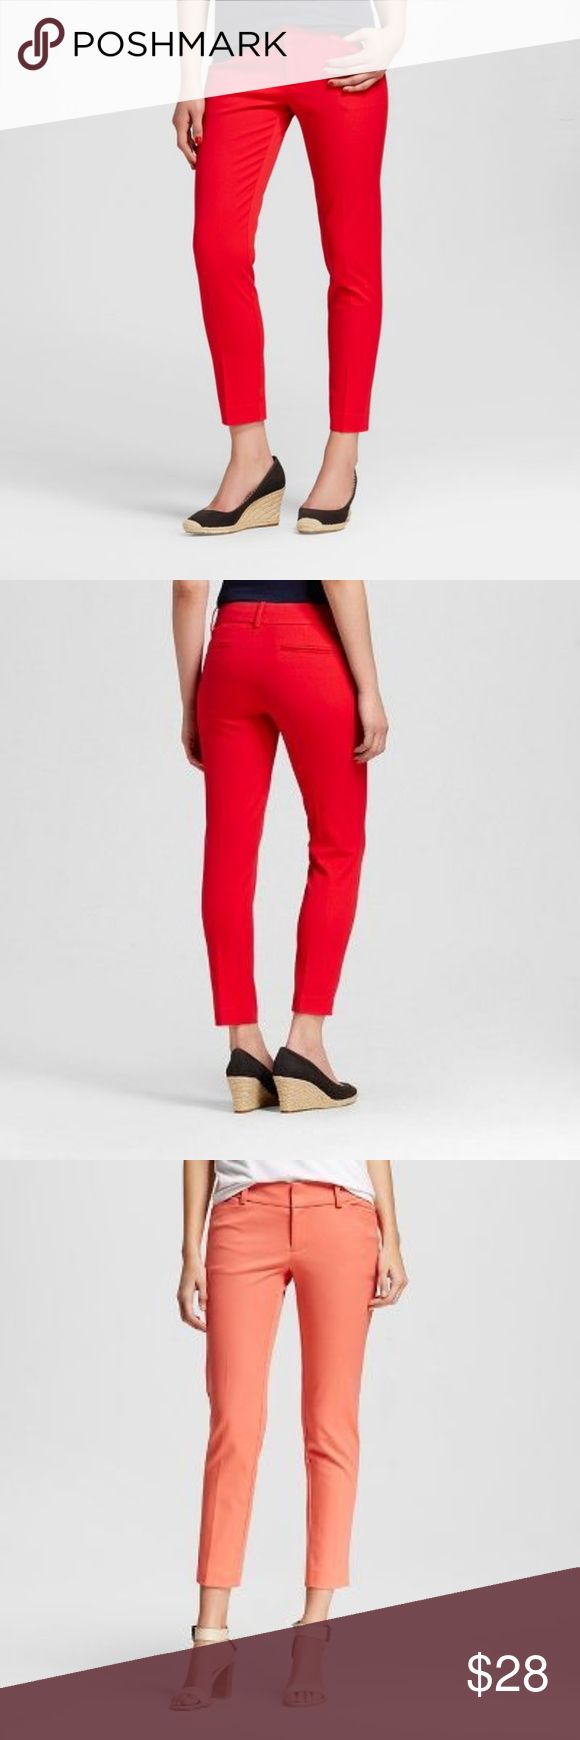 NEW Orange Spark Modern Ankle Pants NWT [D6] Add some color to your summer wardrobe with the Merona Women's Modern Ankle Pant. With a mid-rise waist, ankle-length hem and fitted cut, you'll love the look and feel of these pants. The pants have all the necessary details of your favorite skinnies like front and back pockets, belt loops and overall chicness.  size 4 waist 30 inseam 27 rise 8 leg opening 11  new with tags color: orange spark  @cjrose25  *stock photos to show style & fit in red…